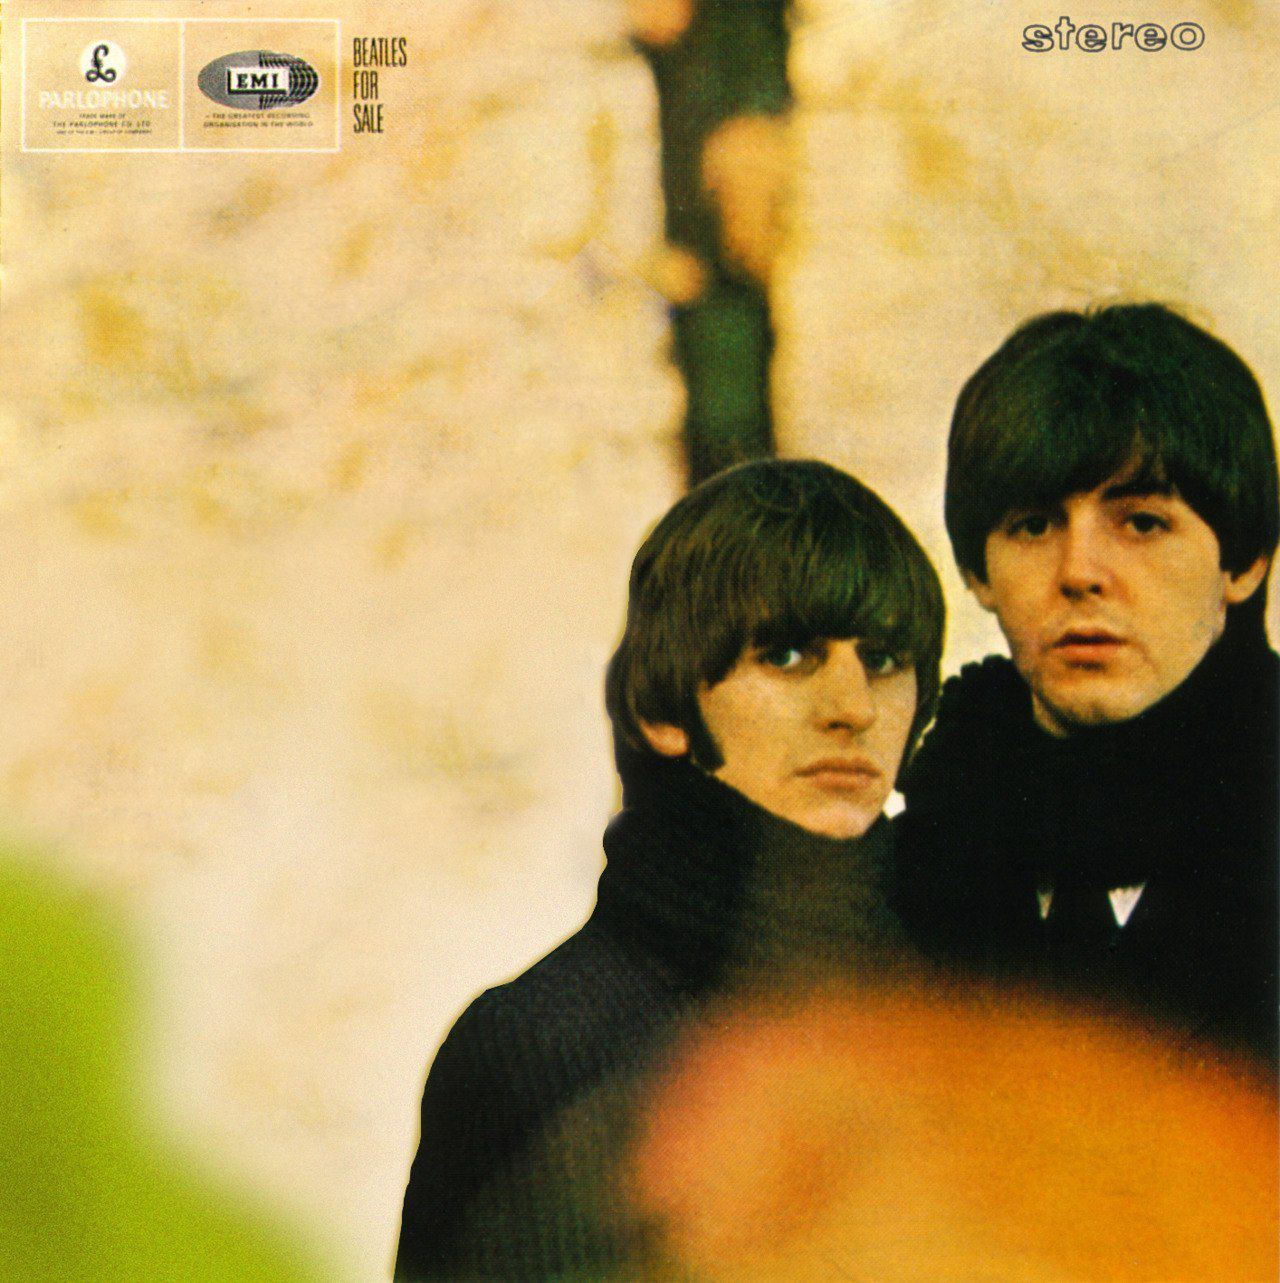 I pretty much love all Beatles pictures I find, but these just made me feel a mixture of sadness and anger